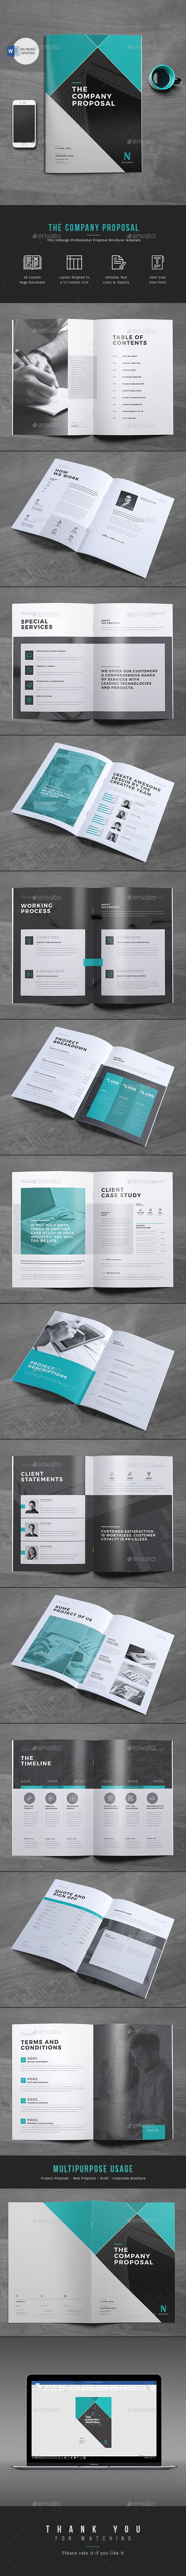 Proposal by themedevisers Proposal Word Template Want to send a business proposal or project proposal to prospective client? This 28 page Professional Bus